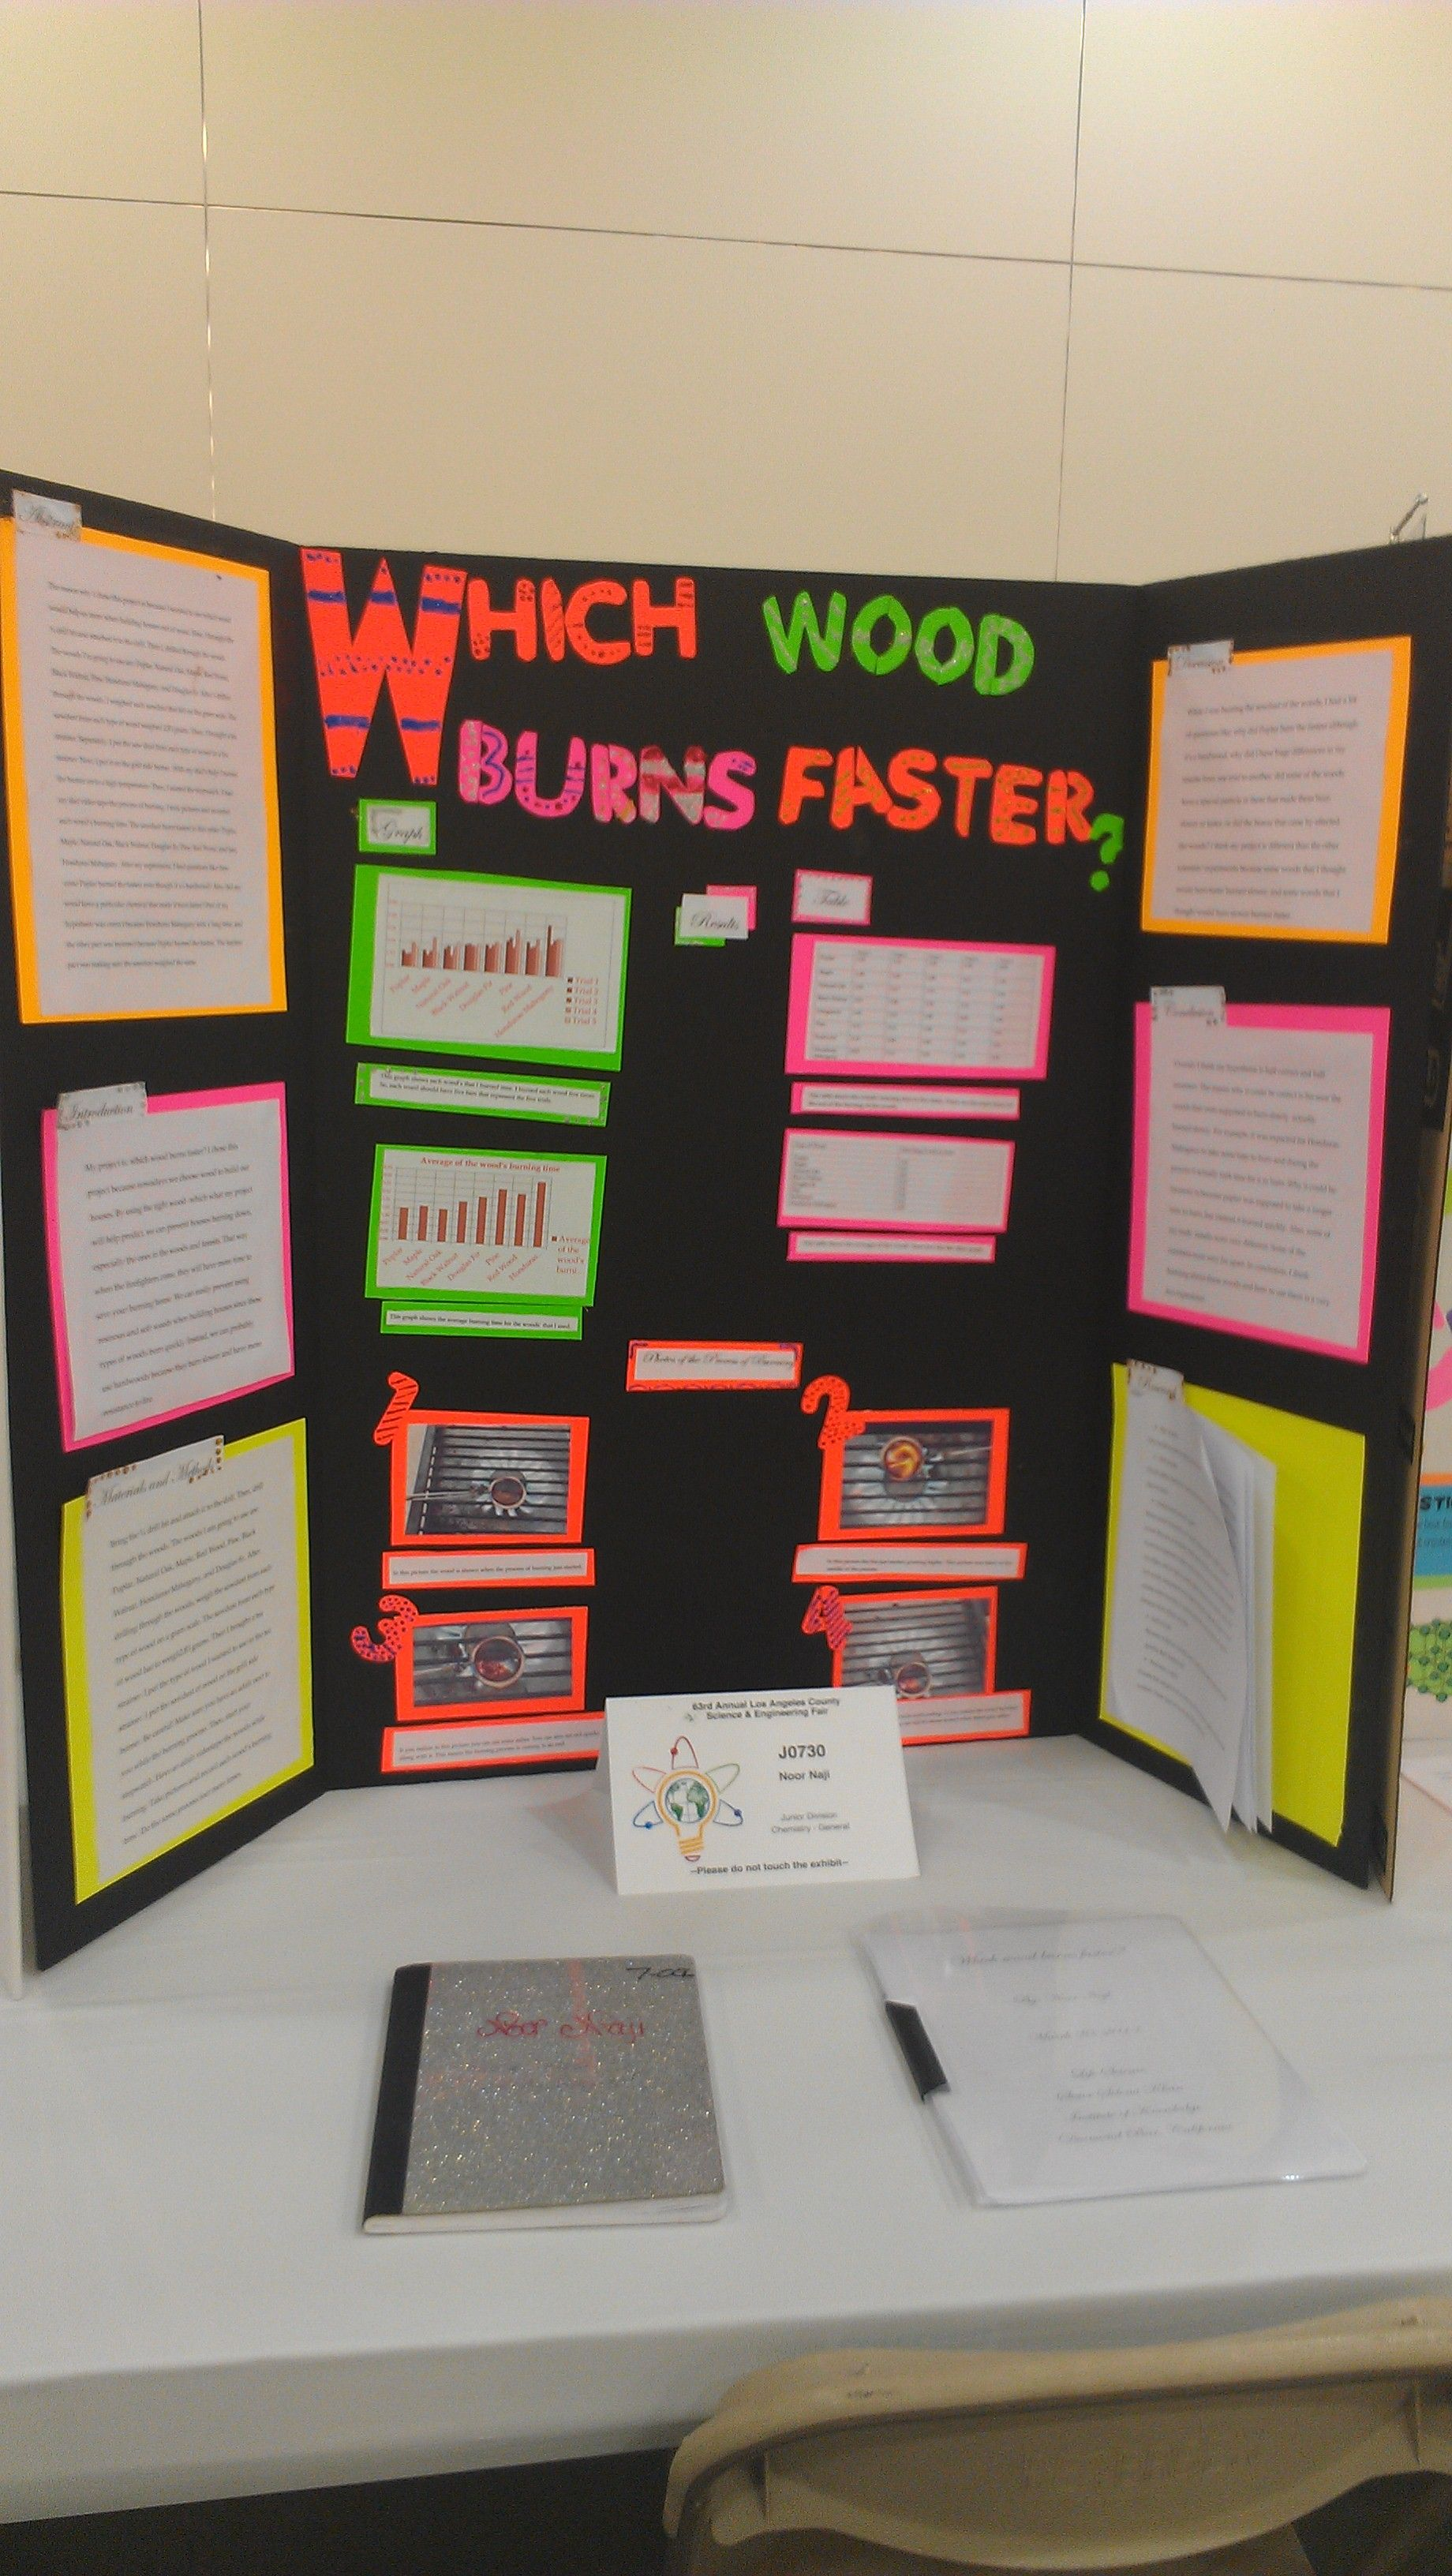 7th grade science fair project by noor naji: 2013 la county science